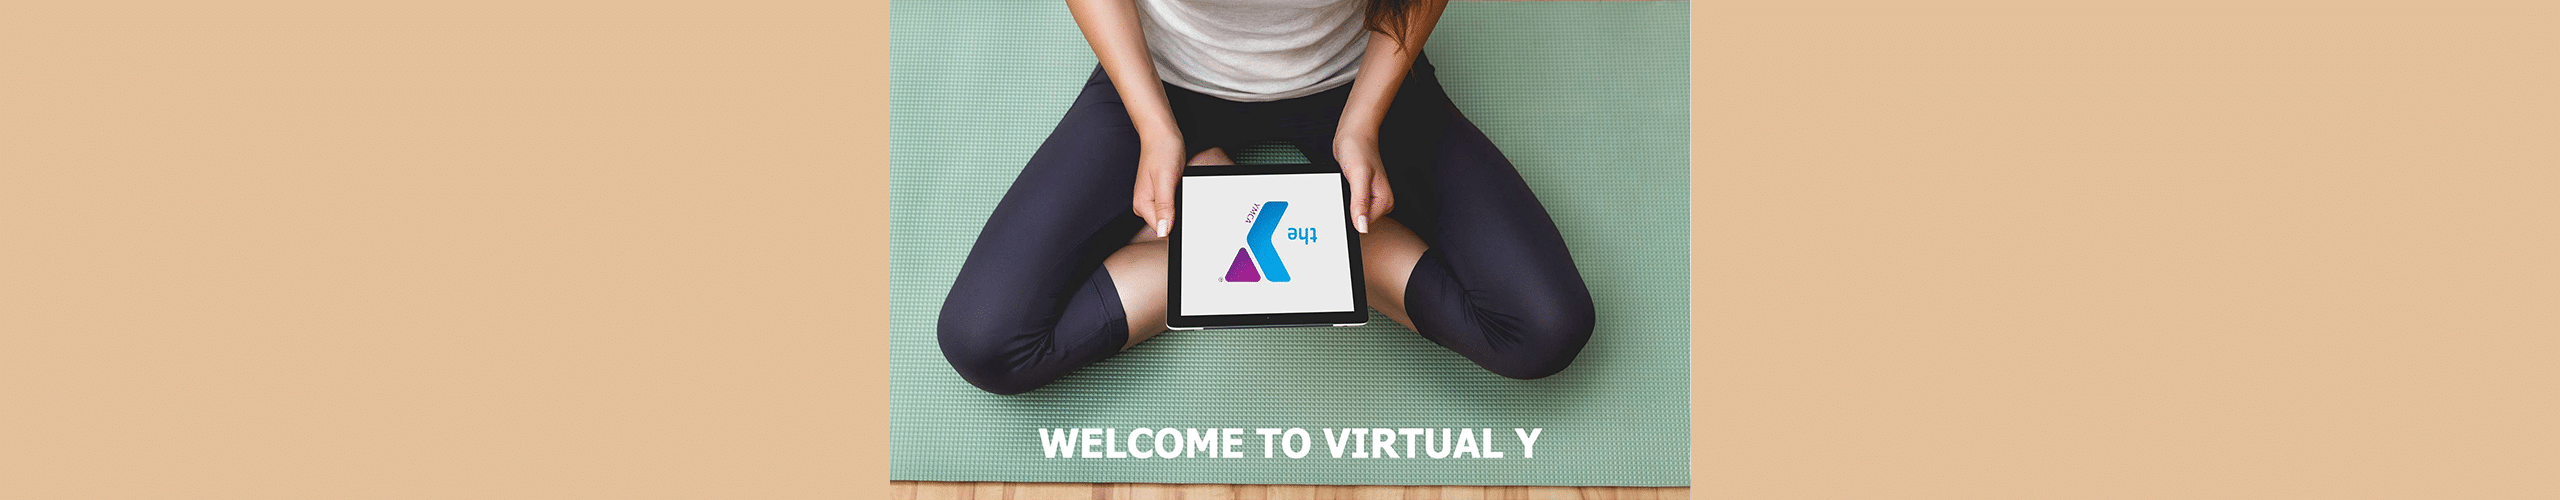 Welcome to Virtual Y